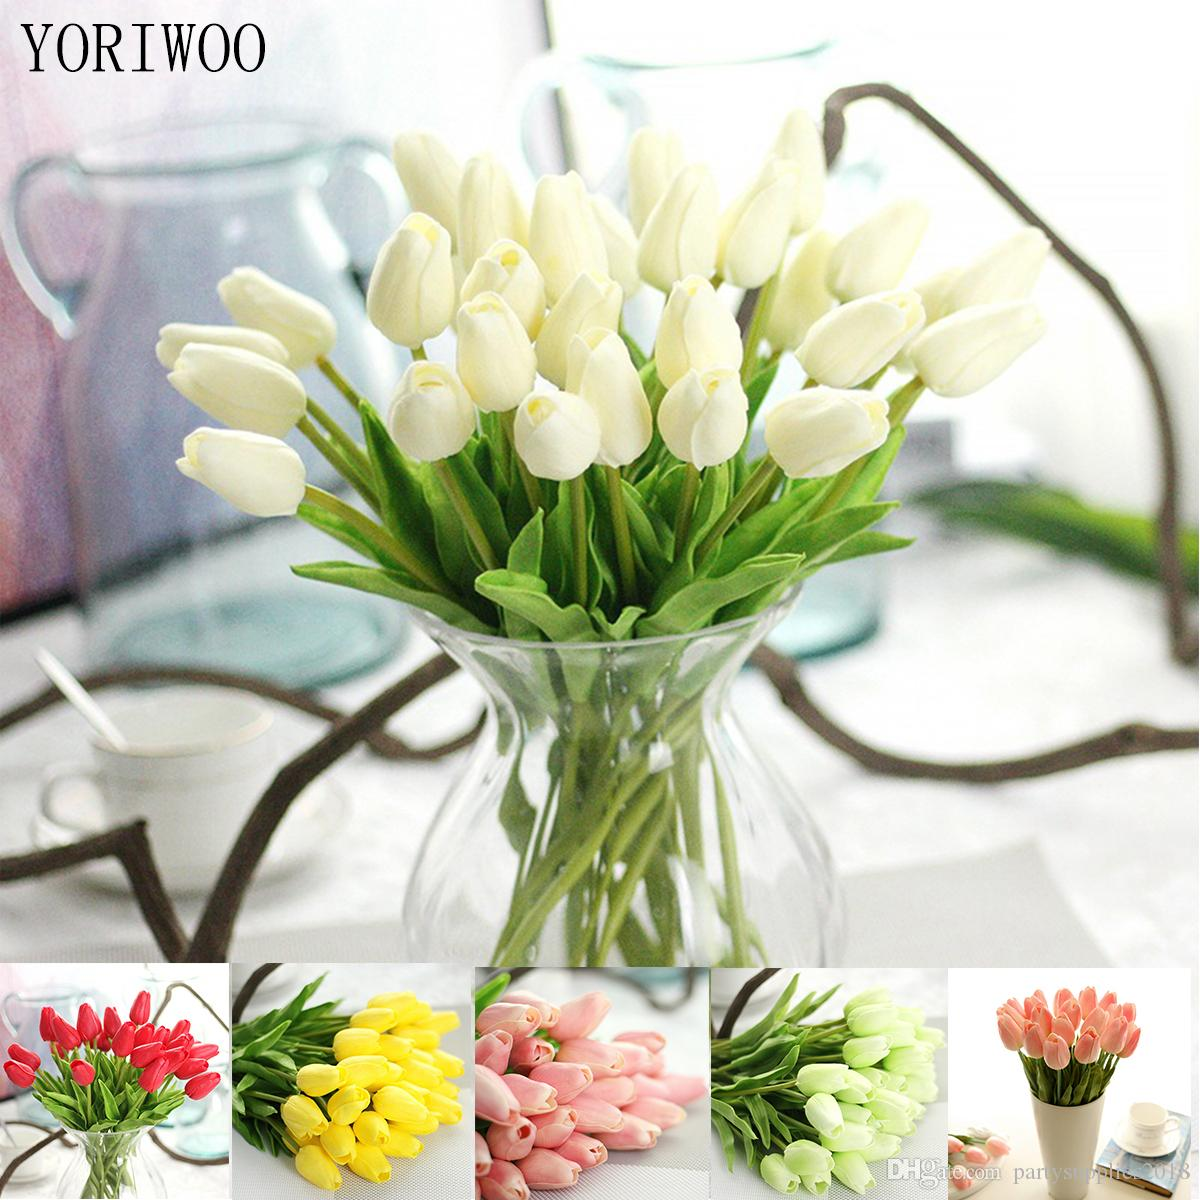 2018 latex tulips artificial pu flower bouquet real touch flowers 2018 latex tulips artificial pu flower bouquet real touch flowers for home decoration wedding decorative flowers from partysupplies2018 071 dhgate izmirmasajfo